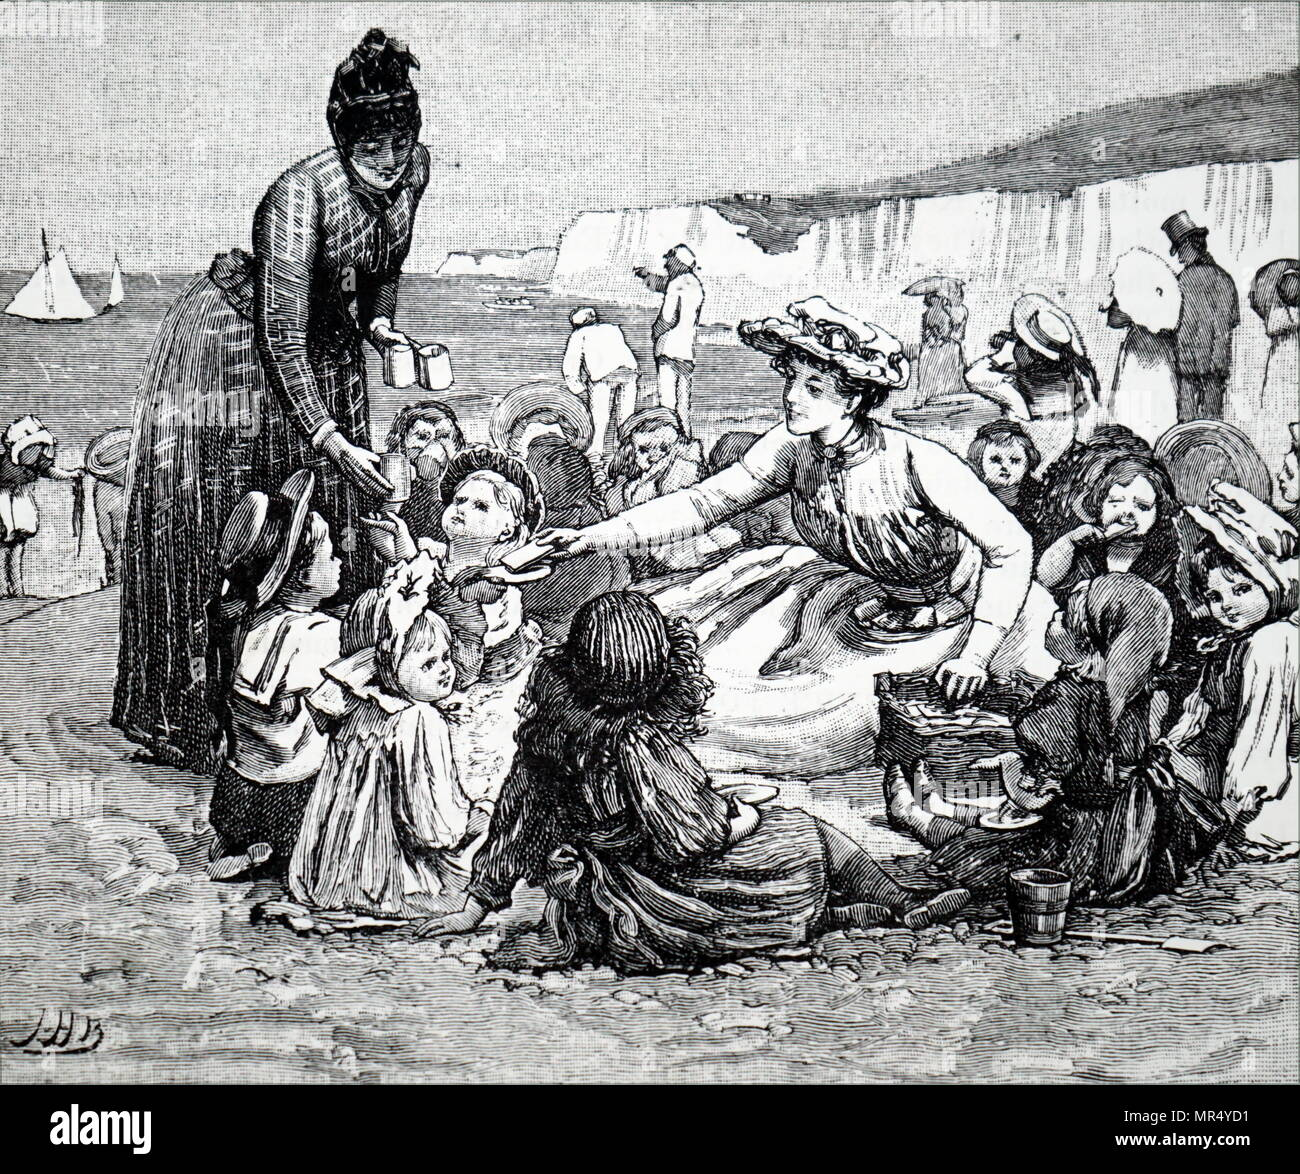 Illustration depicting a seaside outing for poor children. Dated 19th century - Stock Image